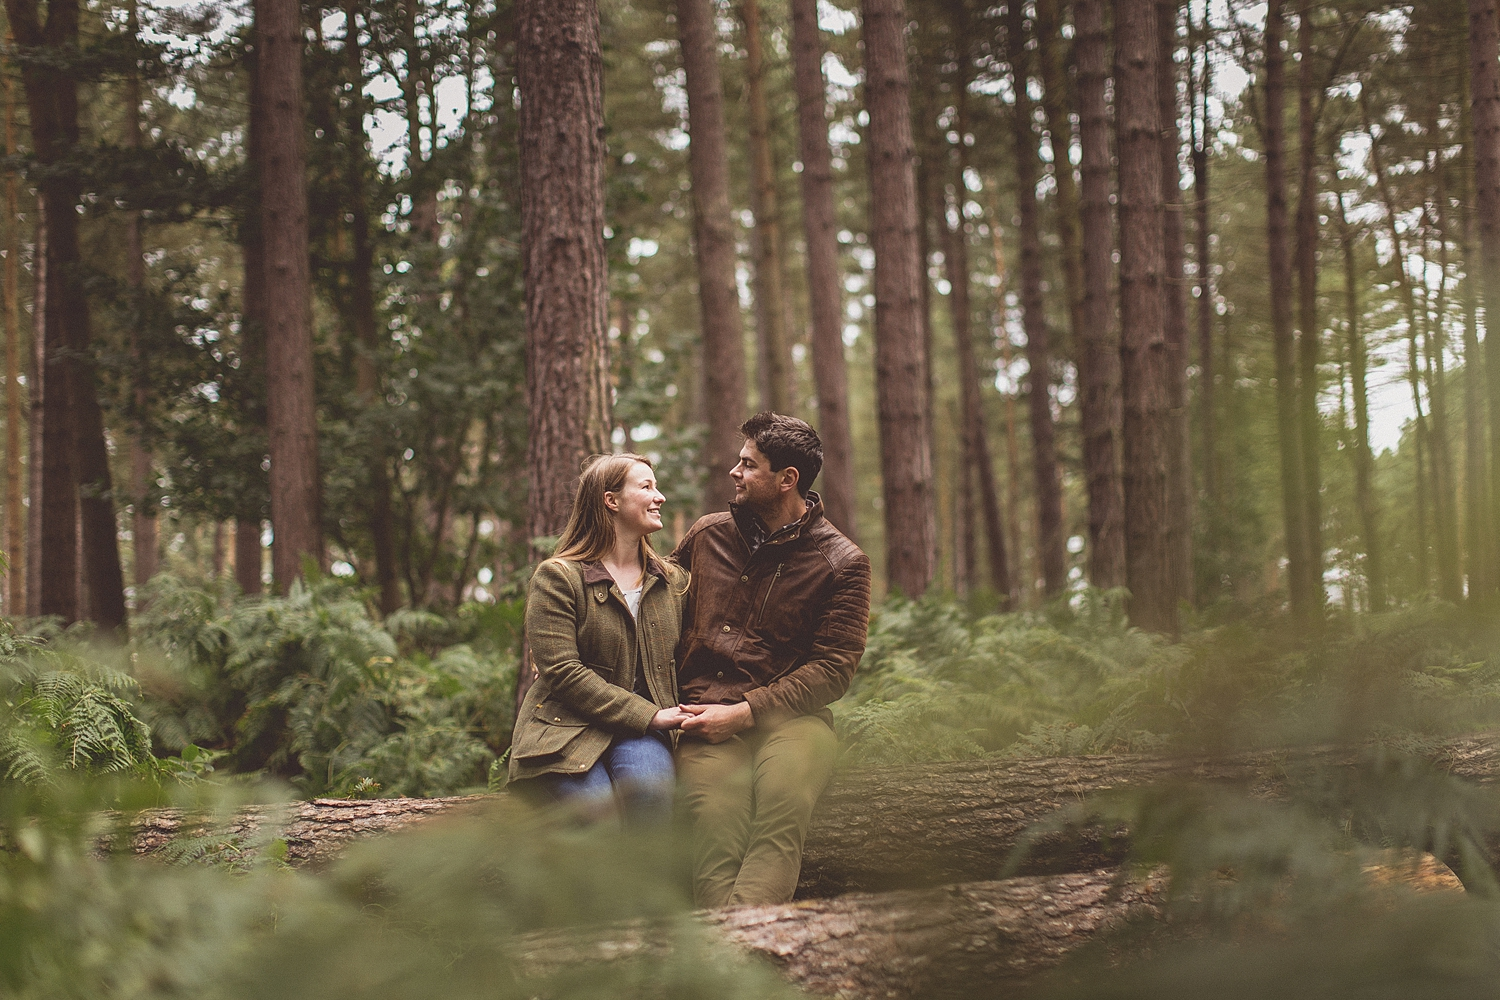 Forestweddingphotography_0012.jpg